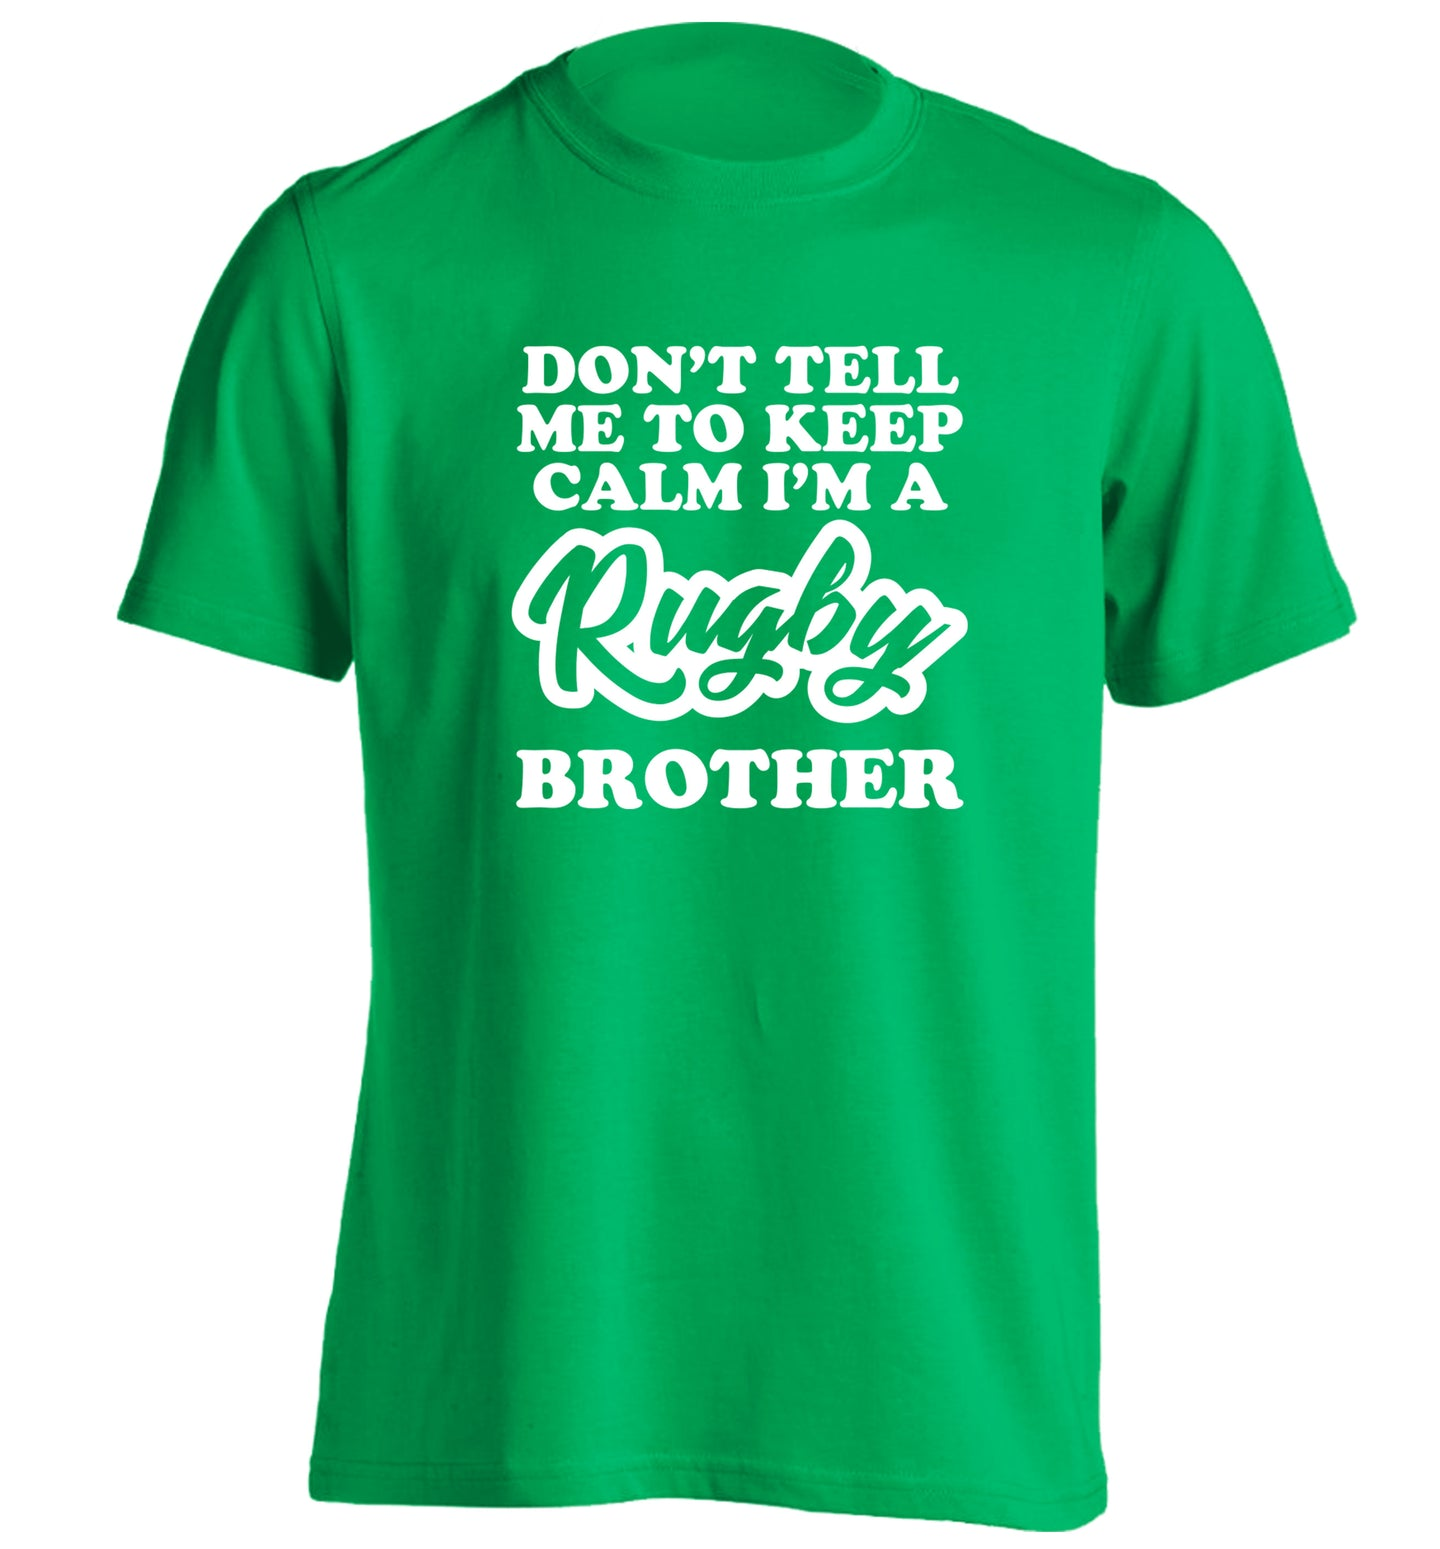 Don't tell me keep calm I'm a rugby brother adults unisex green Tshirt 2XL